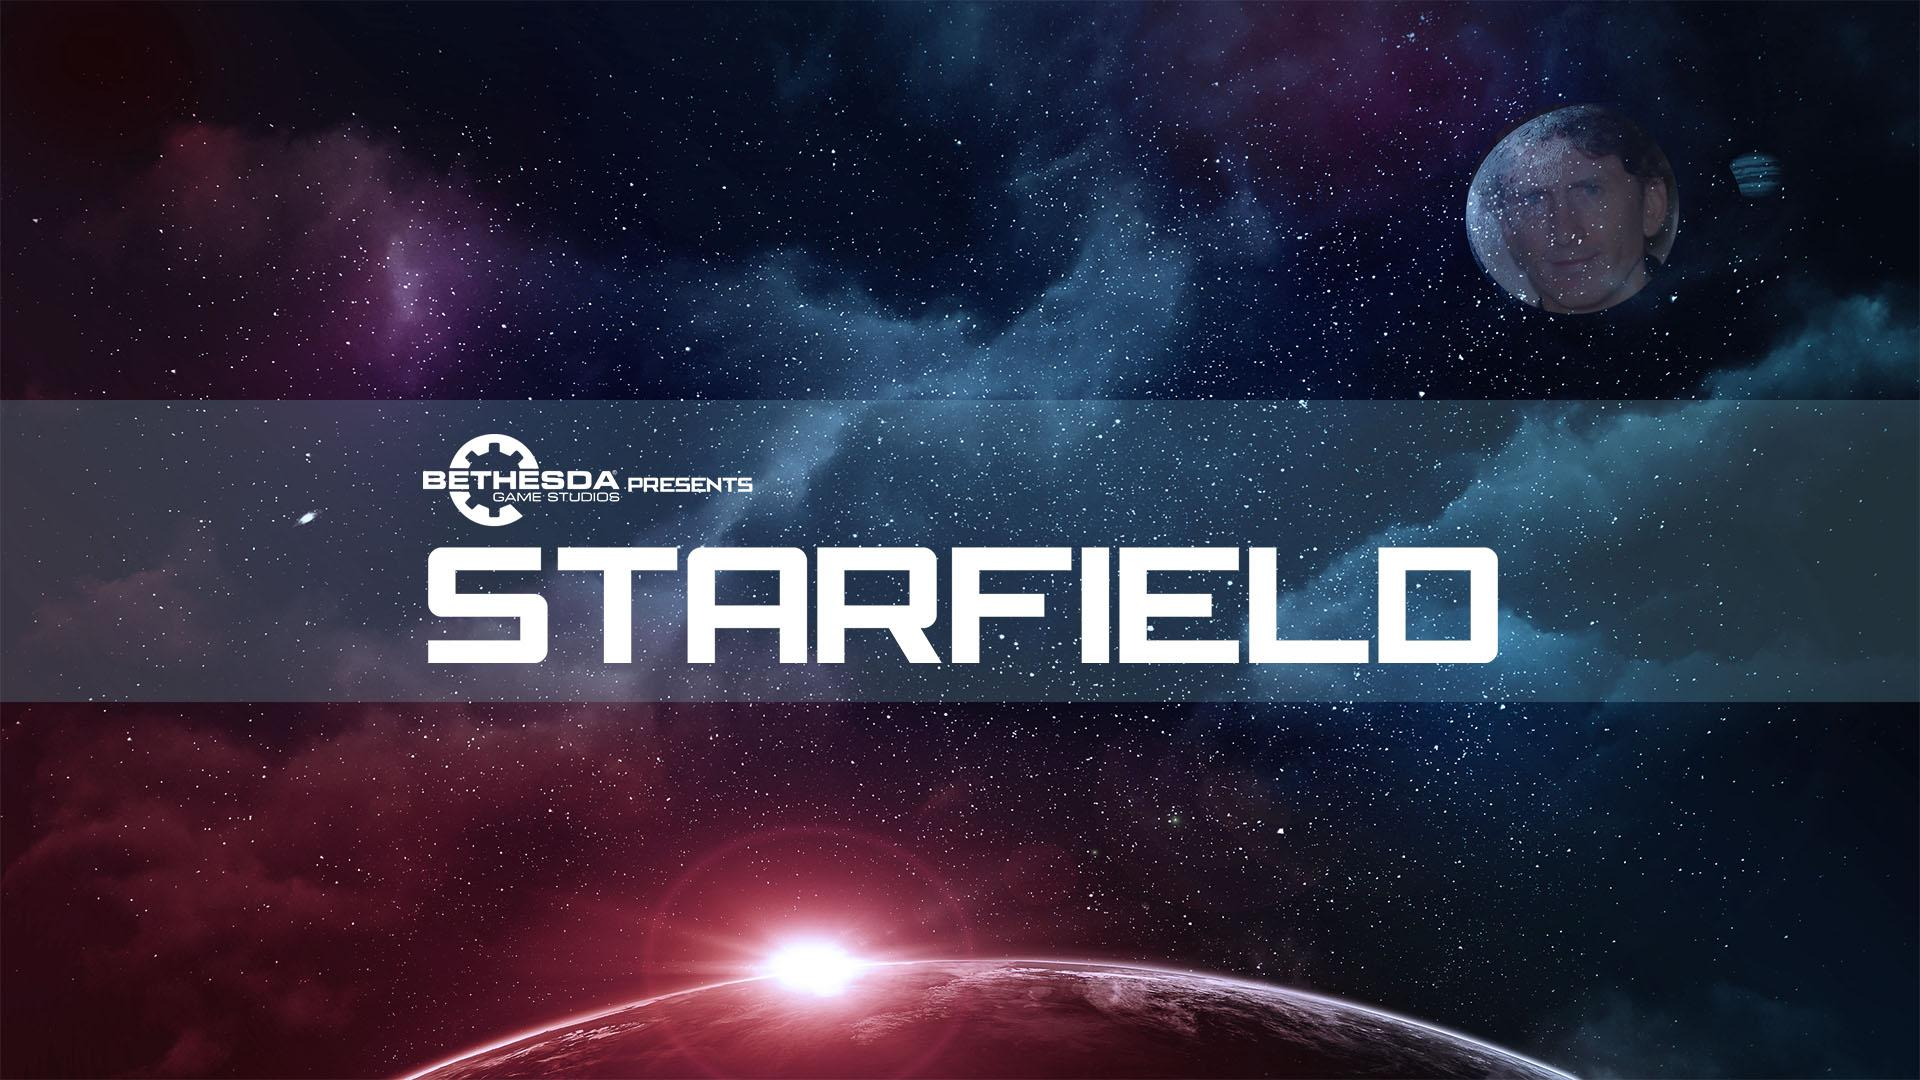 Starfield Bethesda's Newest IP And Generation Title Sirus Gaming